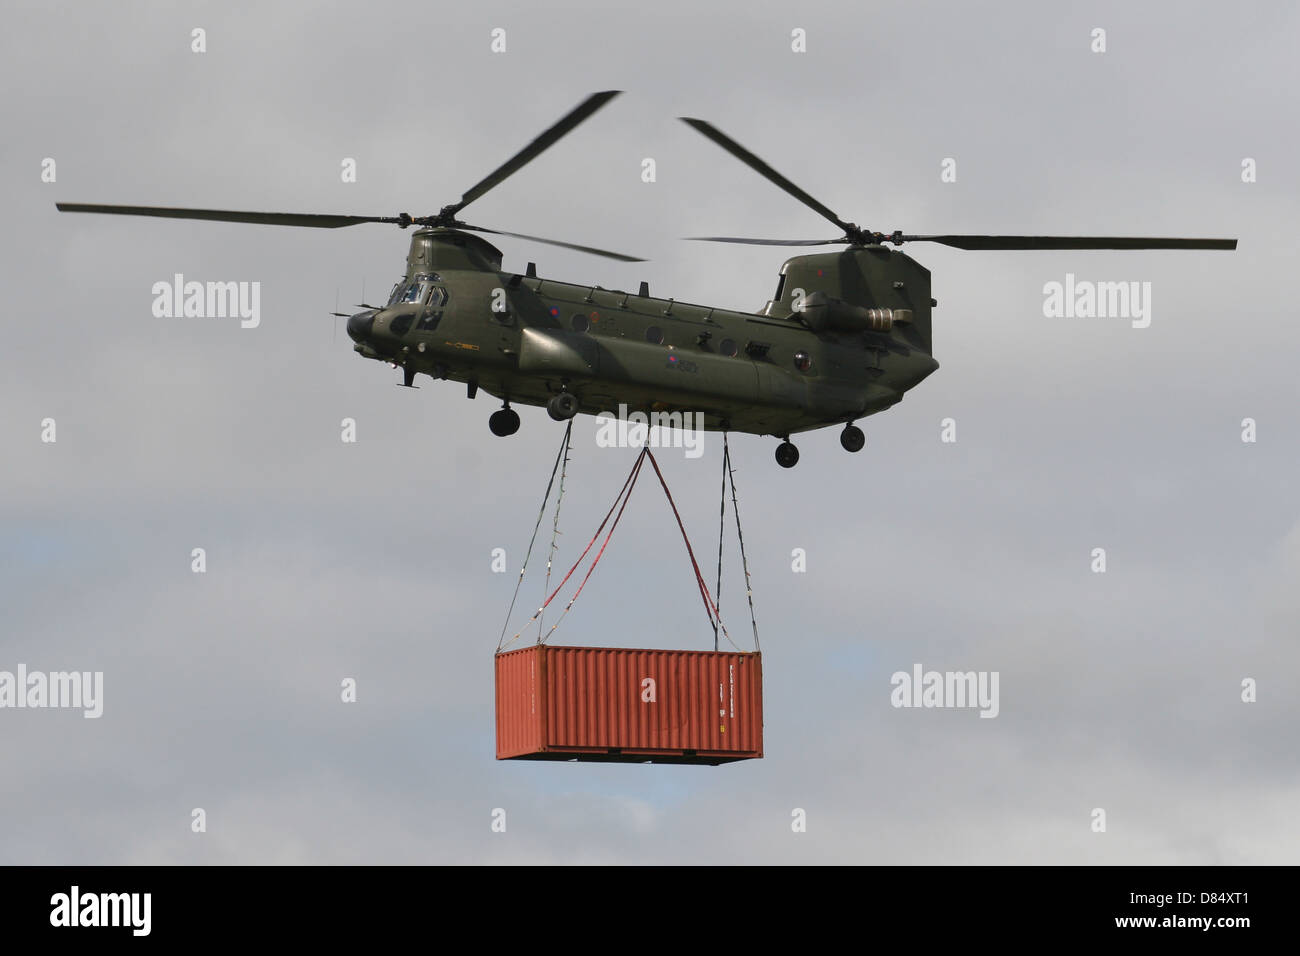 ✮ SPIRIT BRINGERS: THE SIDER STORIES (ANTES LABERINTO DE LA DEMENCIA ☠) - Página 6 Royal-air-force-chinook-carrying-load-container-D84XT1